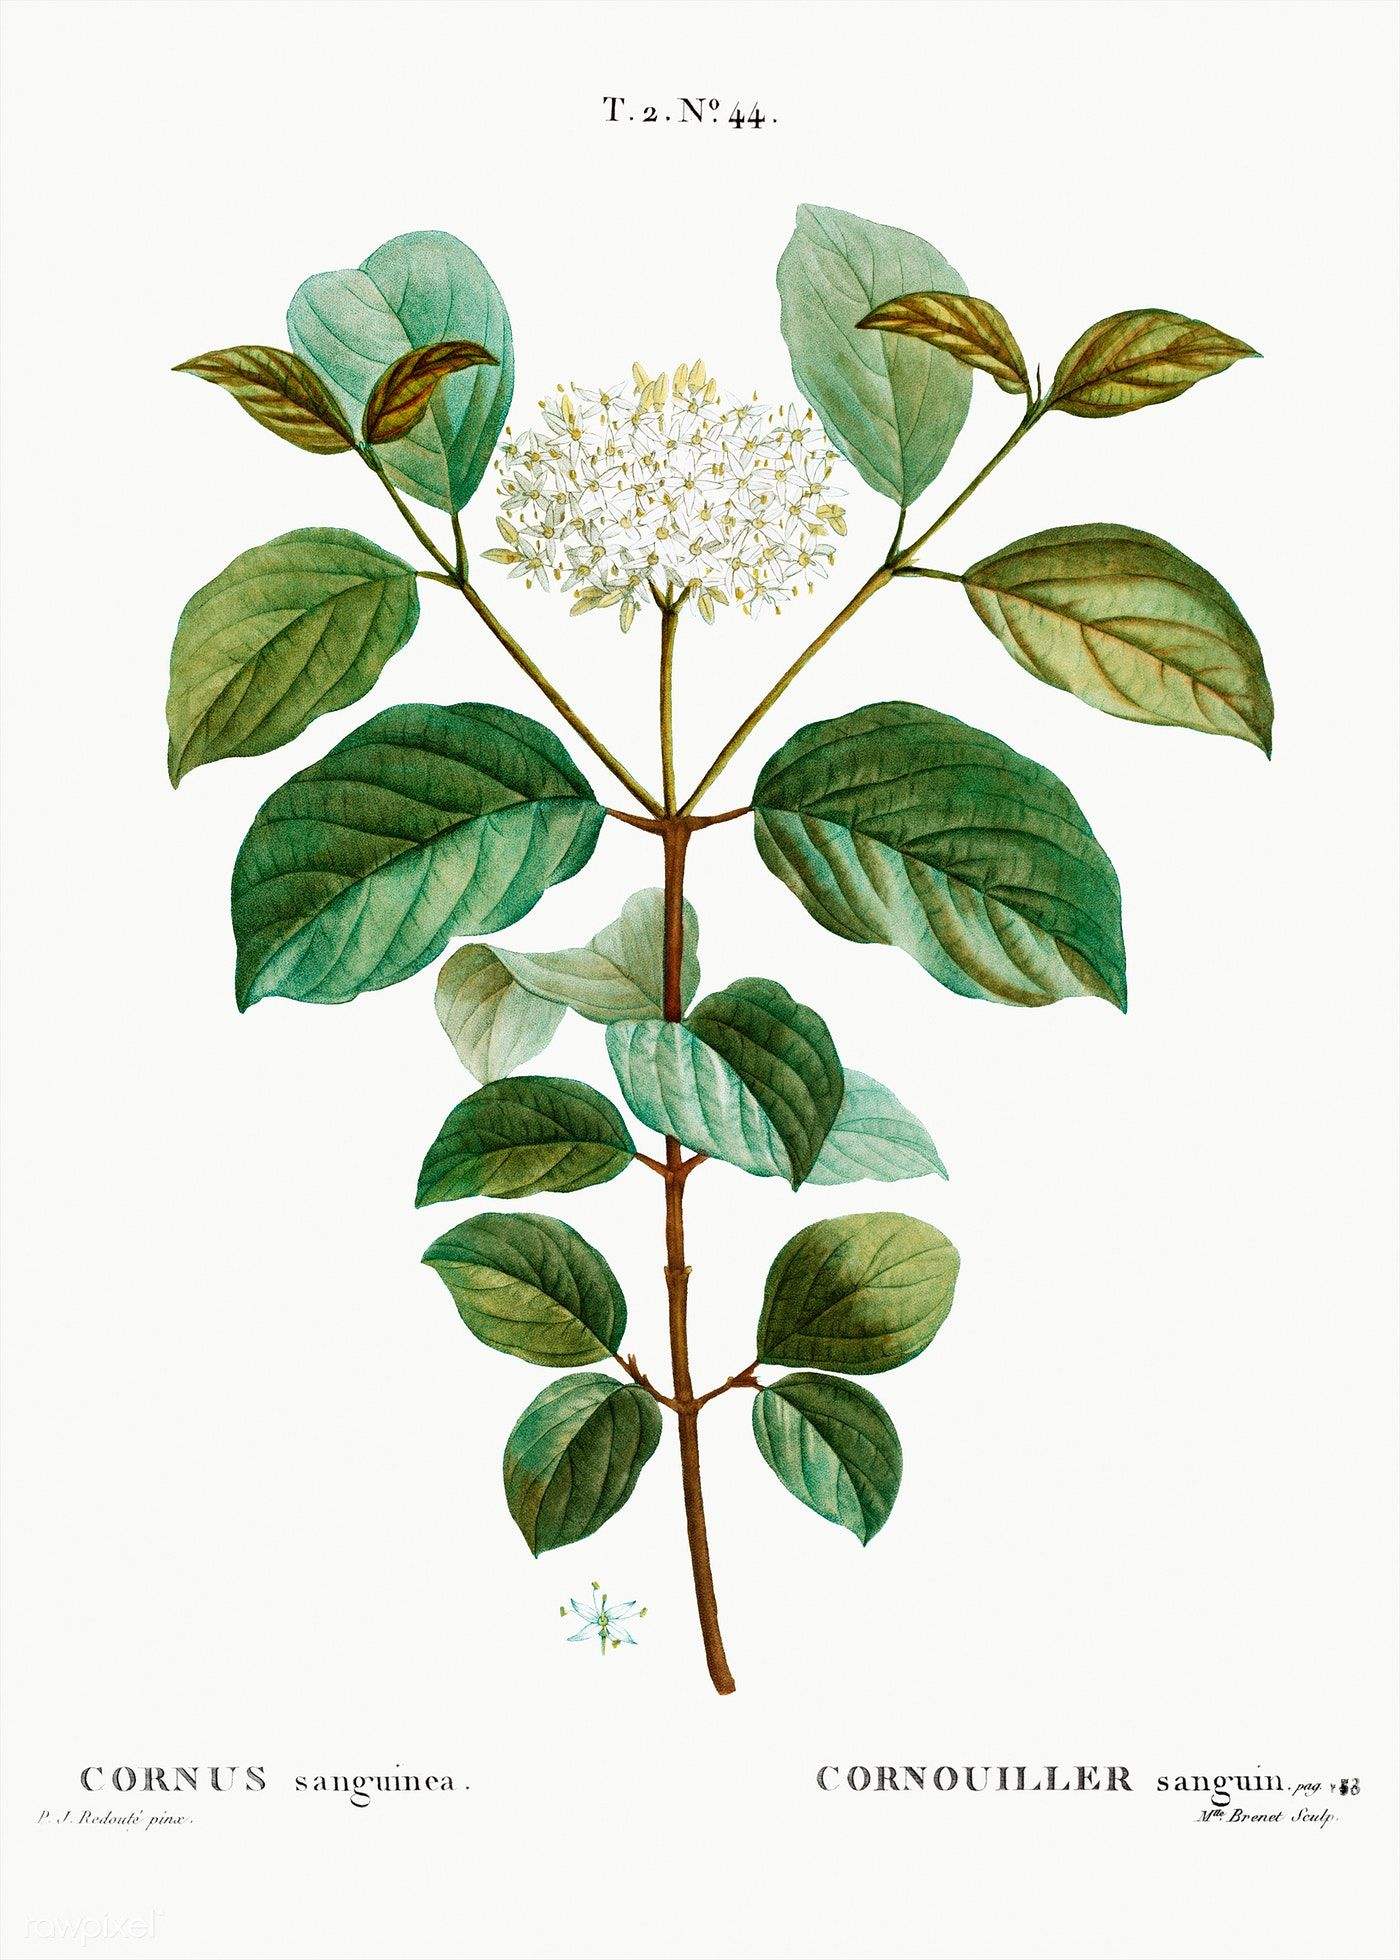 Common Dogwood Cornus Sanguinea From Traite Des Arbres Et Arbustes Que L On Cultive En France En Pleine Terre 1801 1819 By P Dogwood Flowers Dogwood Plants